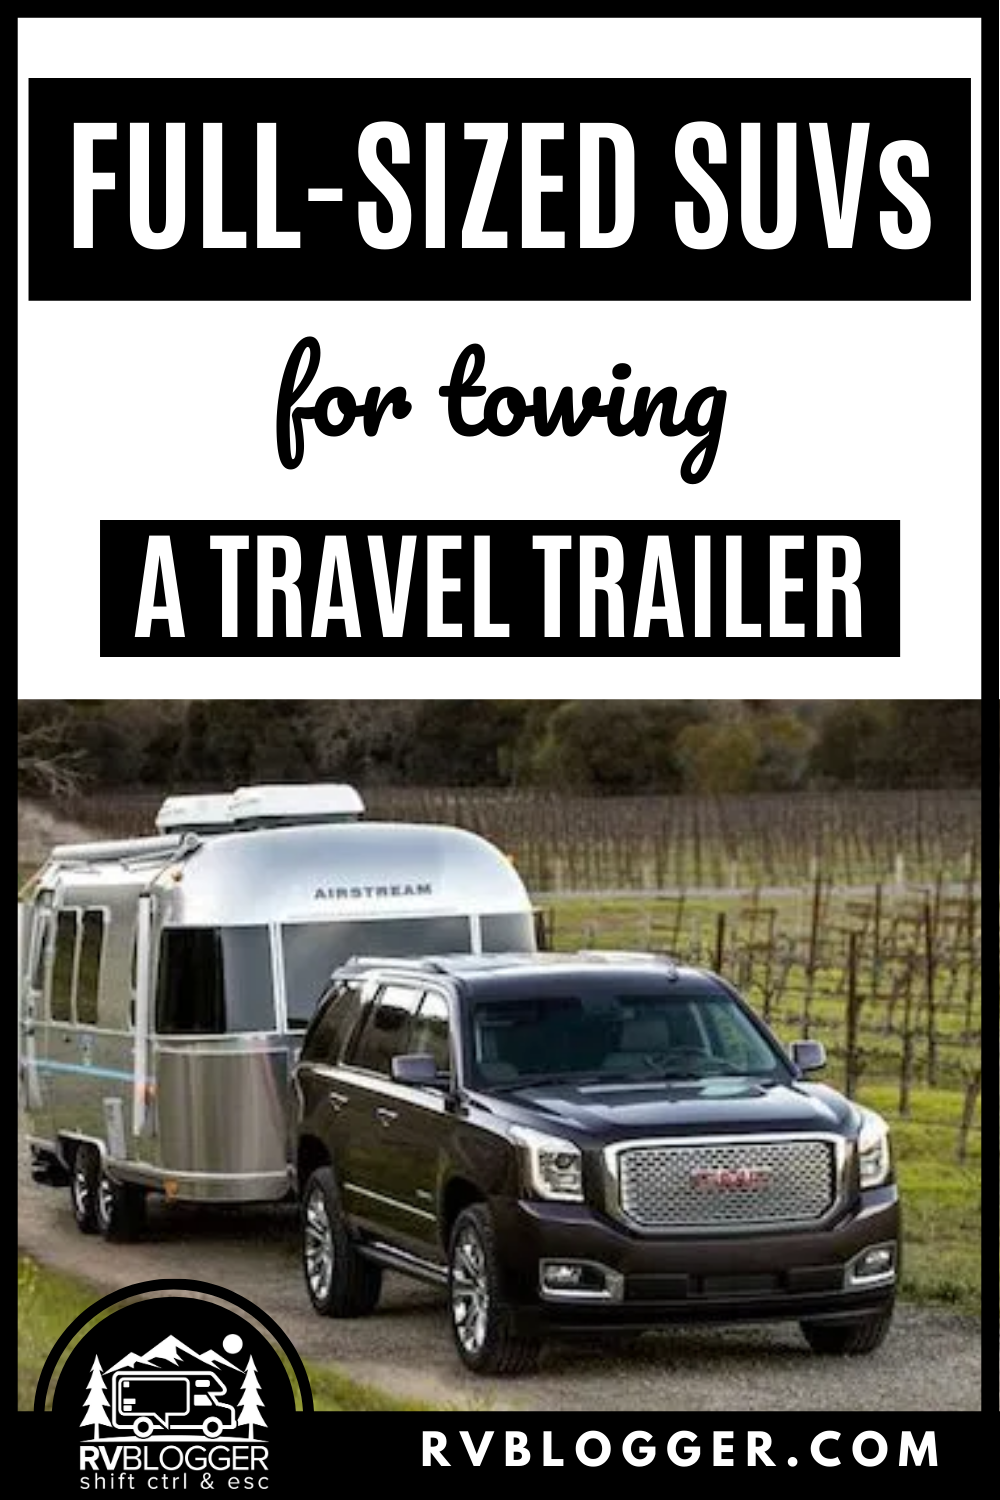 The Best Suv To Tow A Travel Trailer Rvblogger Travel Trailer